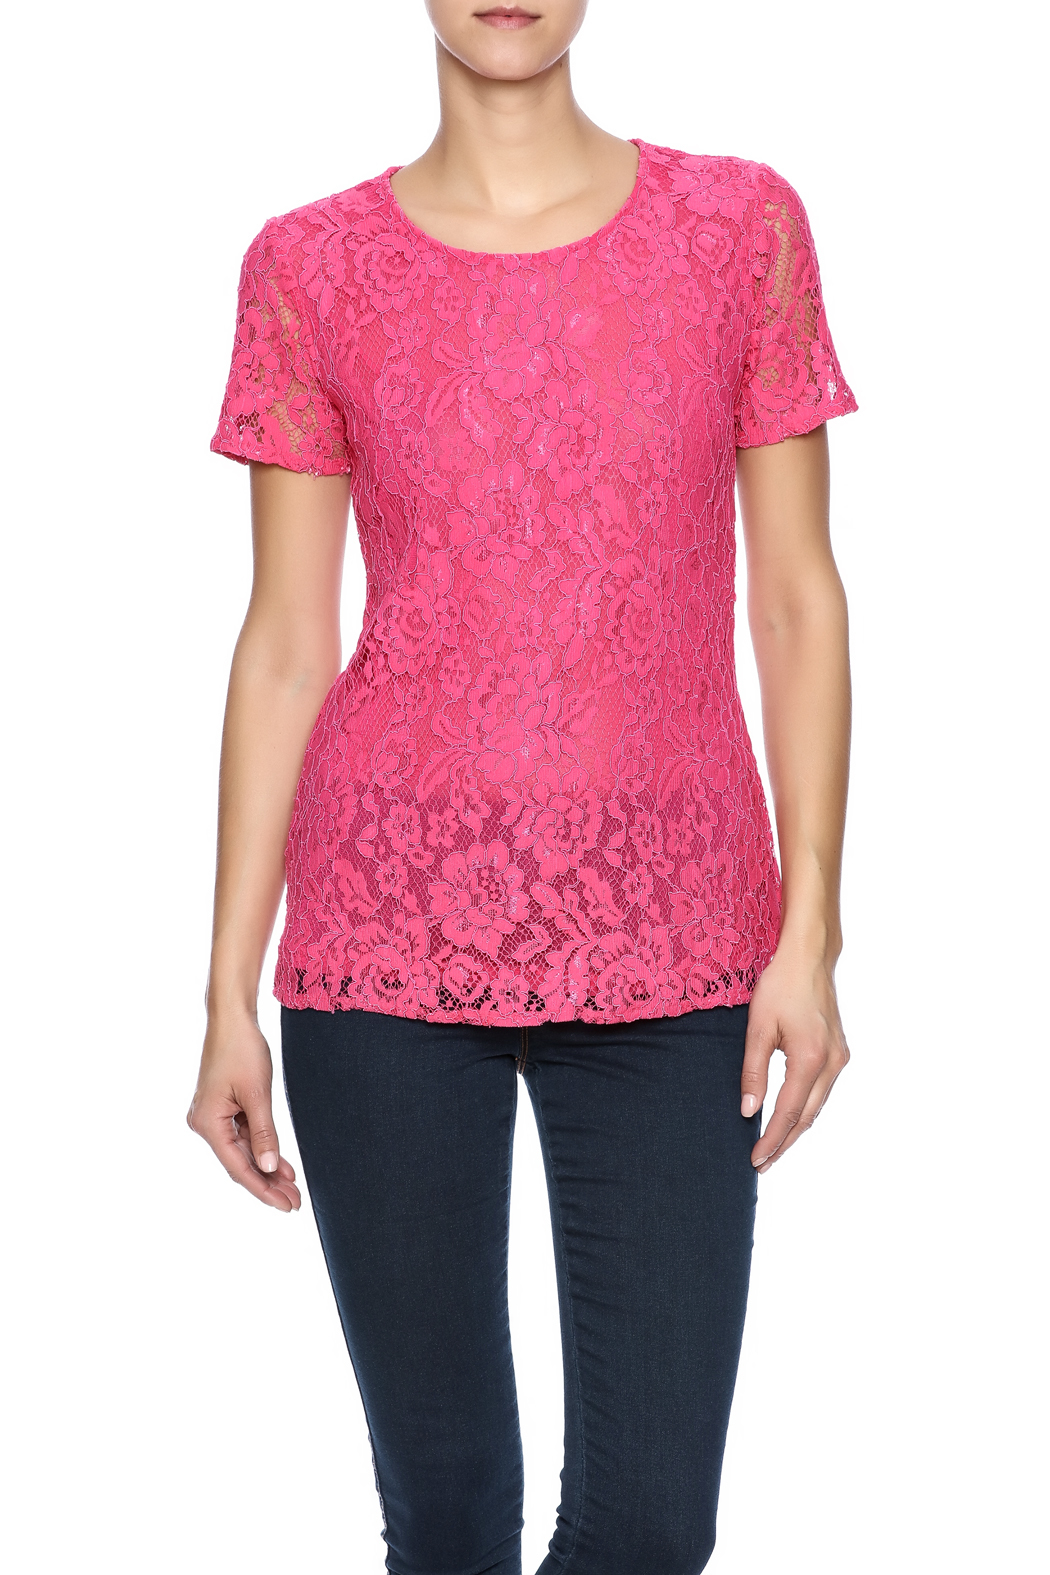 Betas Choice Pink Lace Top from Kentucky by Lee Stephens ...